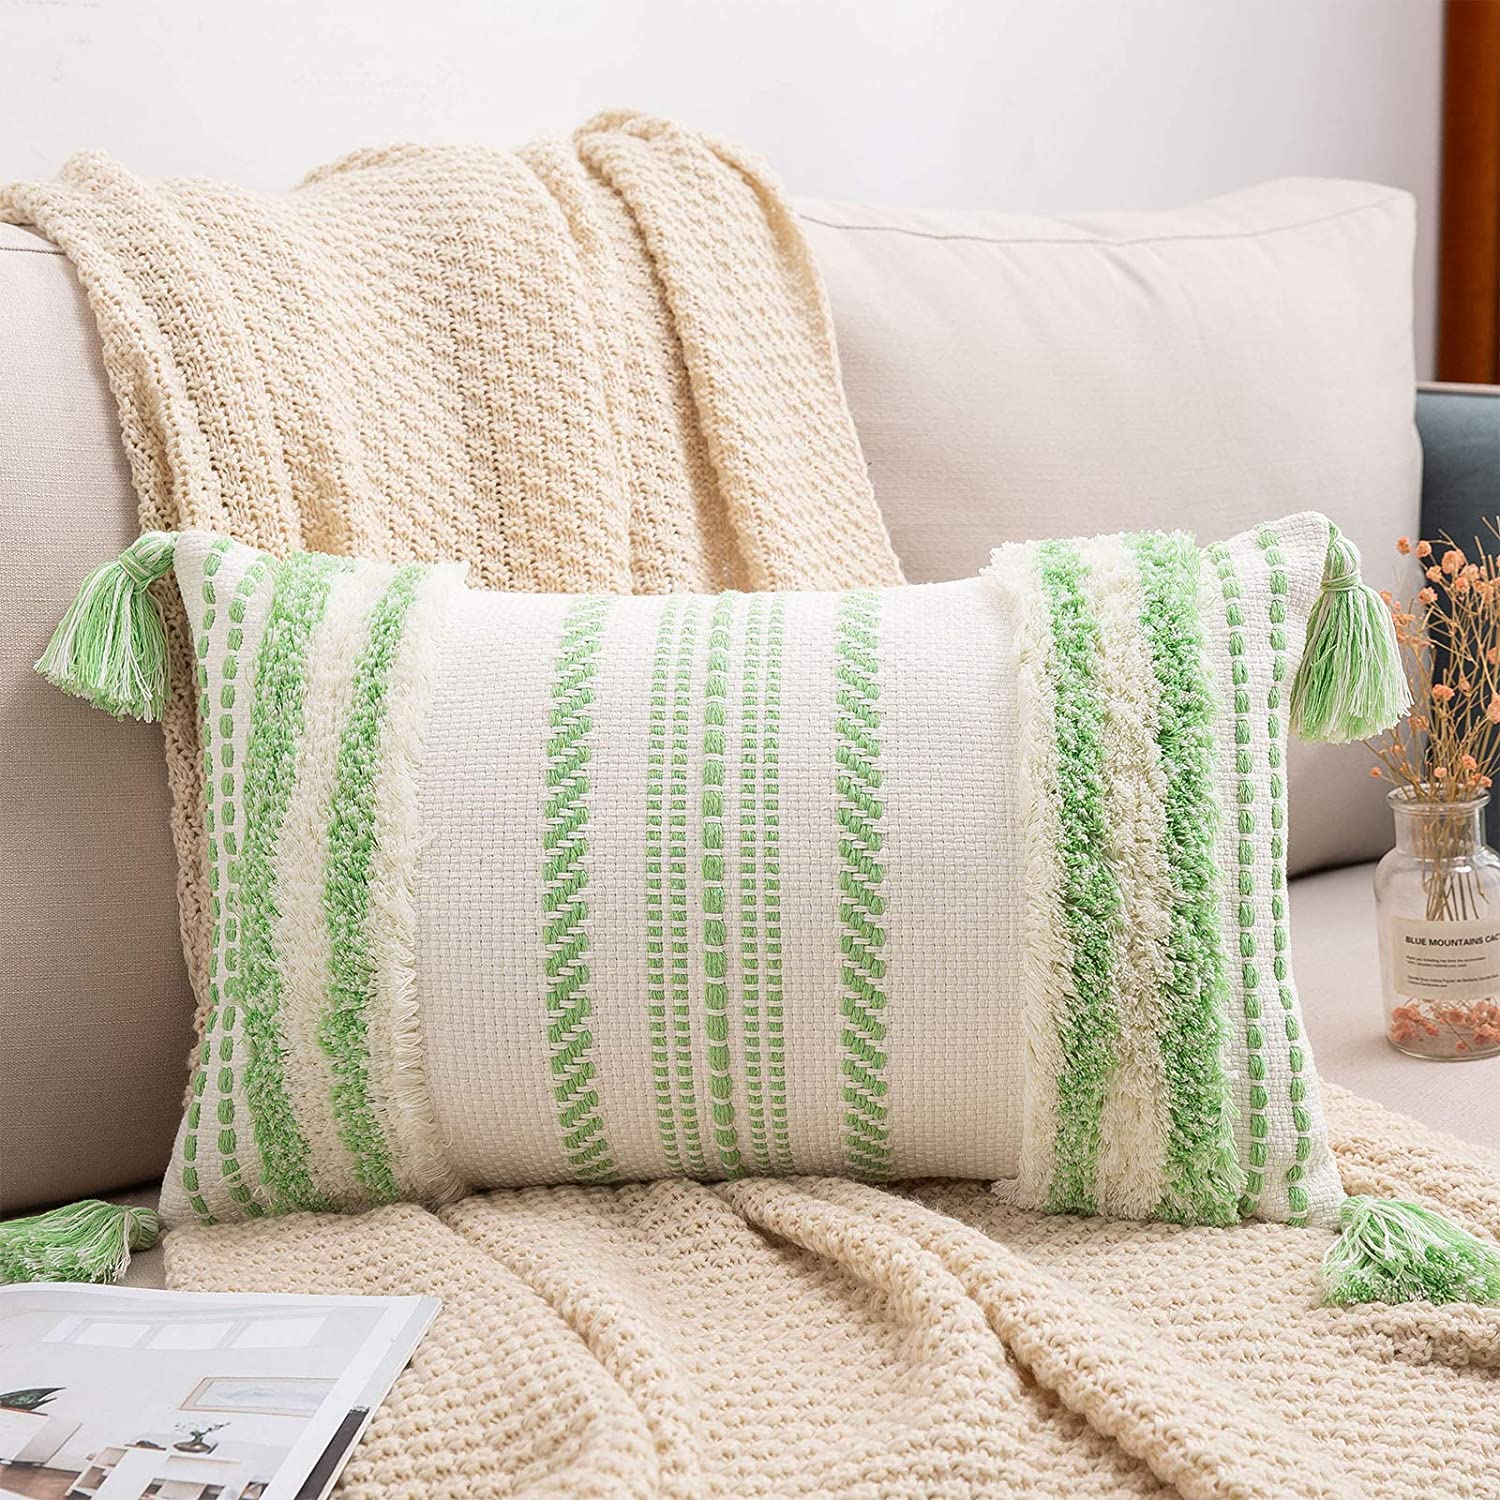 decorUhome Boho Lumbar Decorative Throw Pillow Covers for Bed Bedroom Neutral Accent Cushion Cover Tufted Woven Pillow Case, 12X20, Apple Green